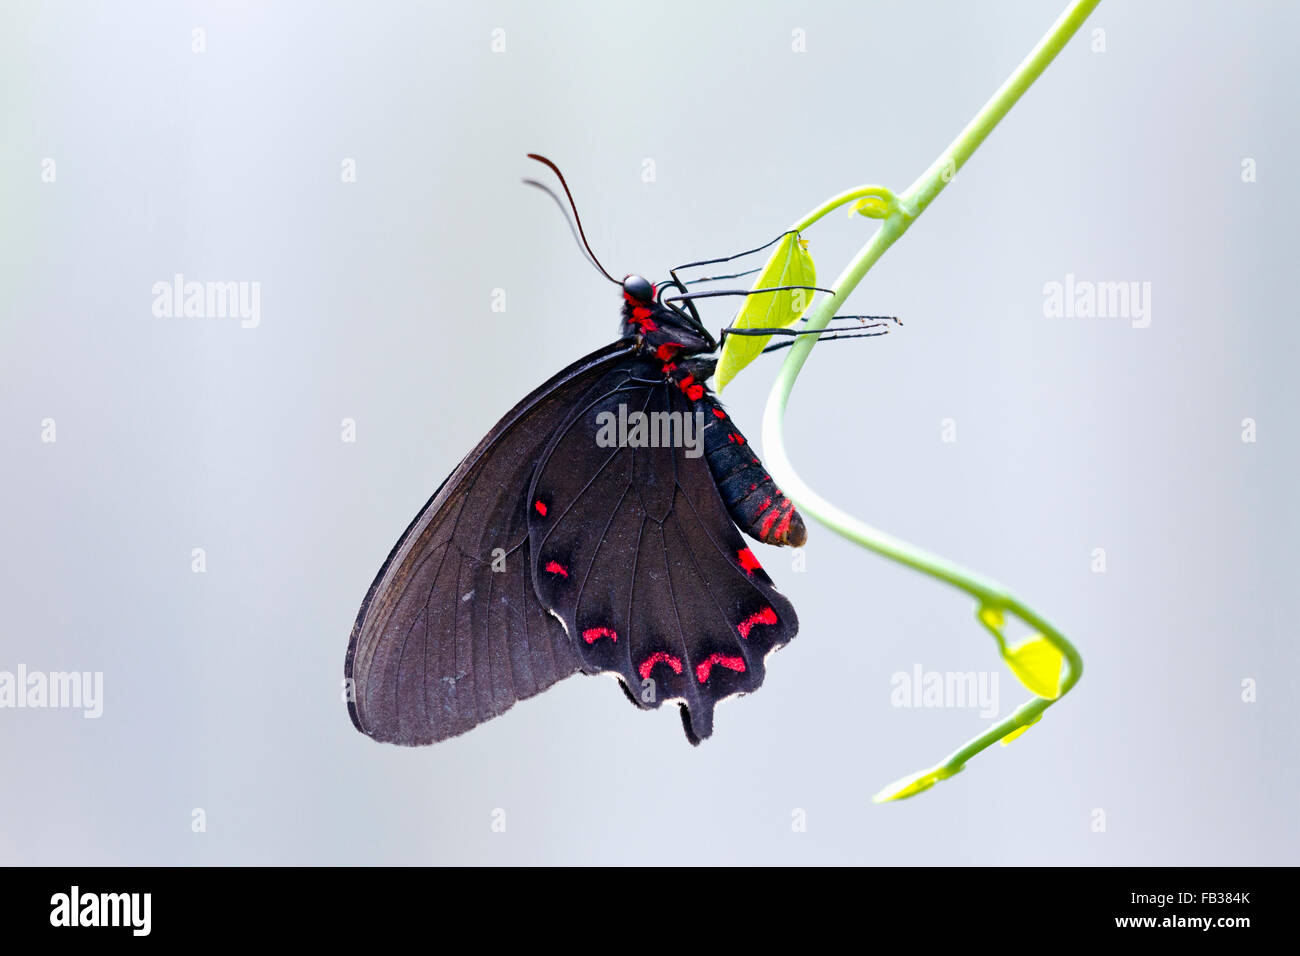 Black and red swallowtail butterfly - Stock Image